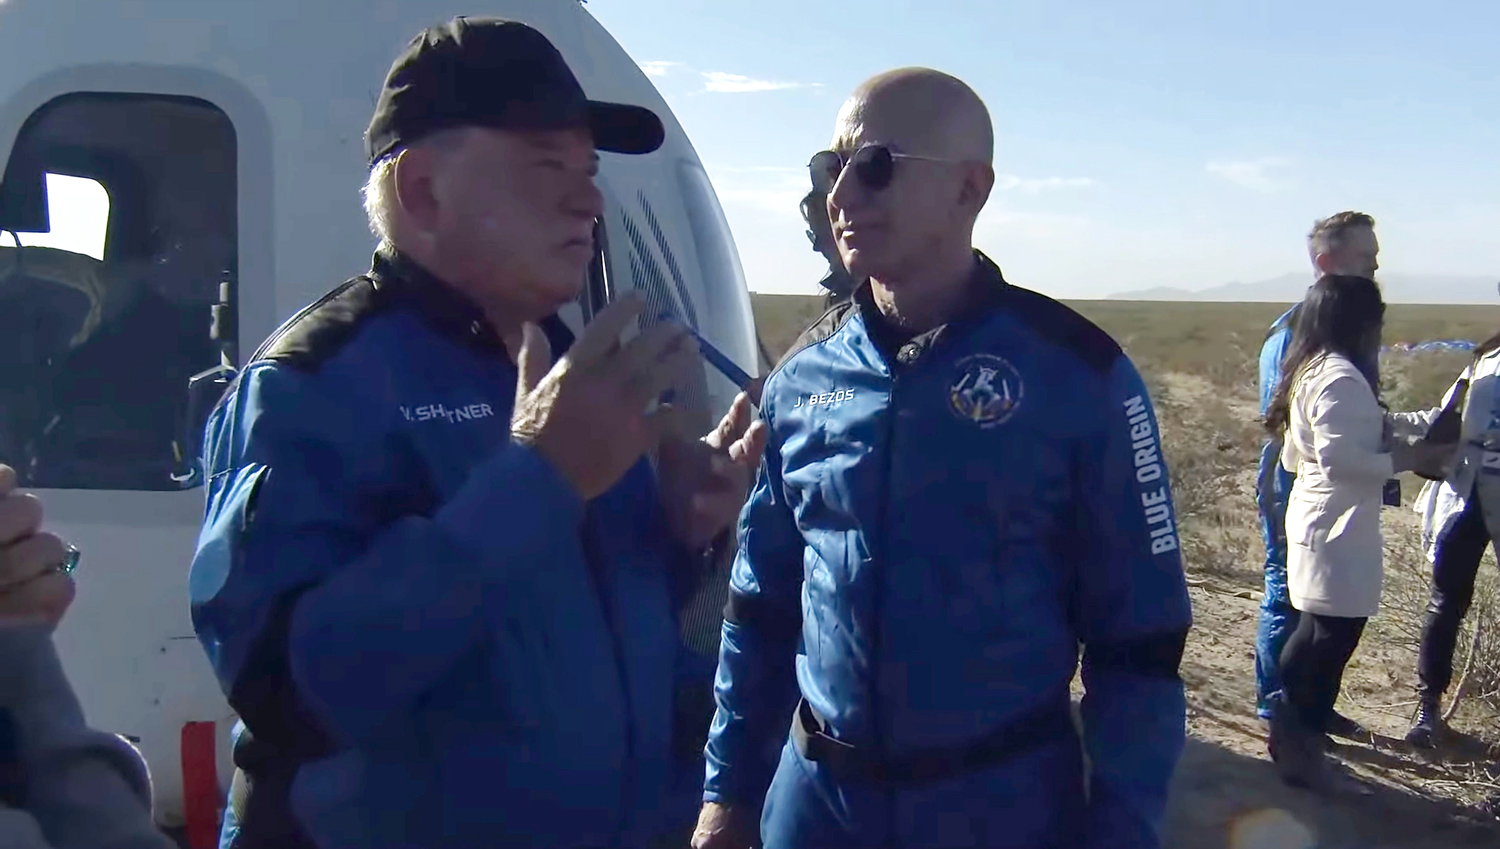 Shatner trip to space with Blue Origin